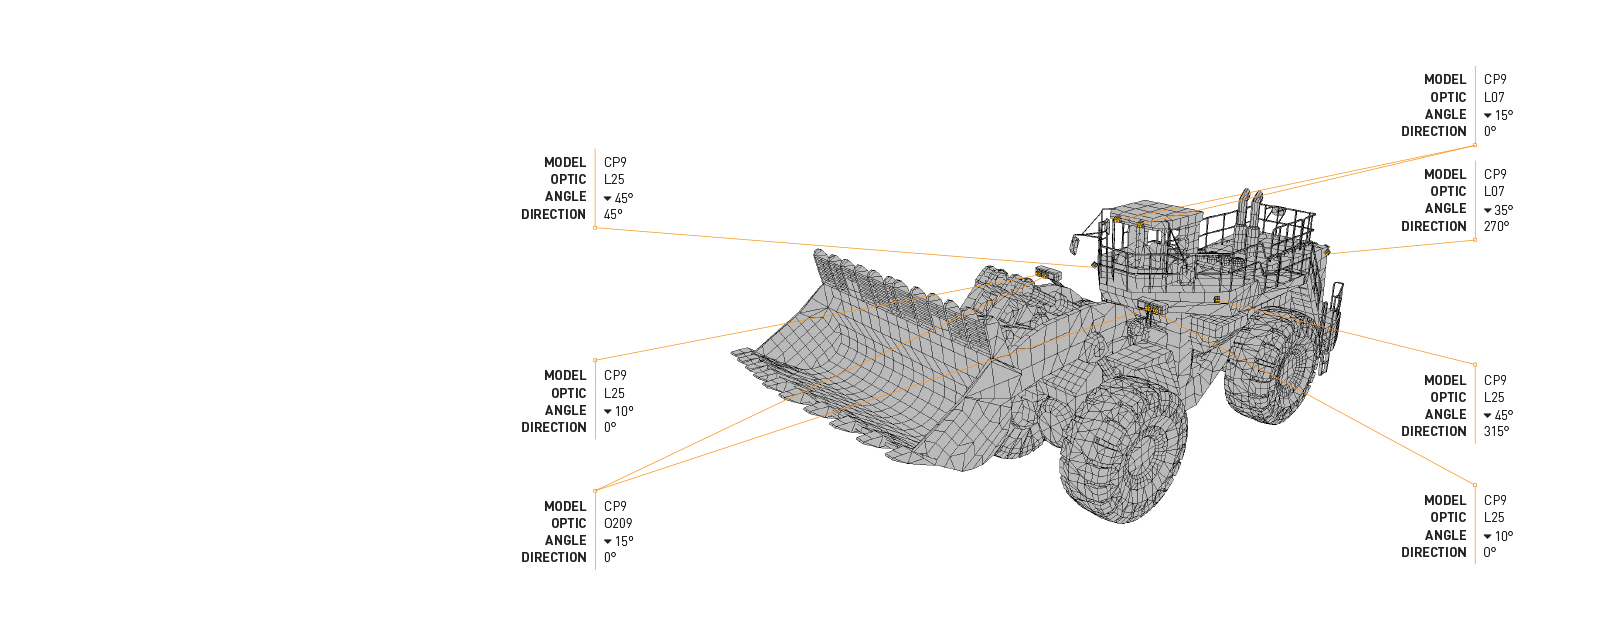 We made this Lighting Design Simulation Report to illustrate how the CP9 LED Floodlight improves the light output of a Komatsu WA1200  wheel loader.